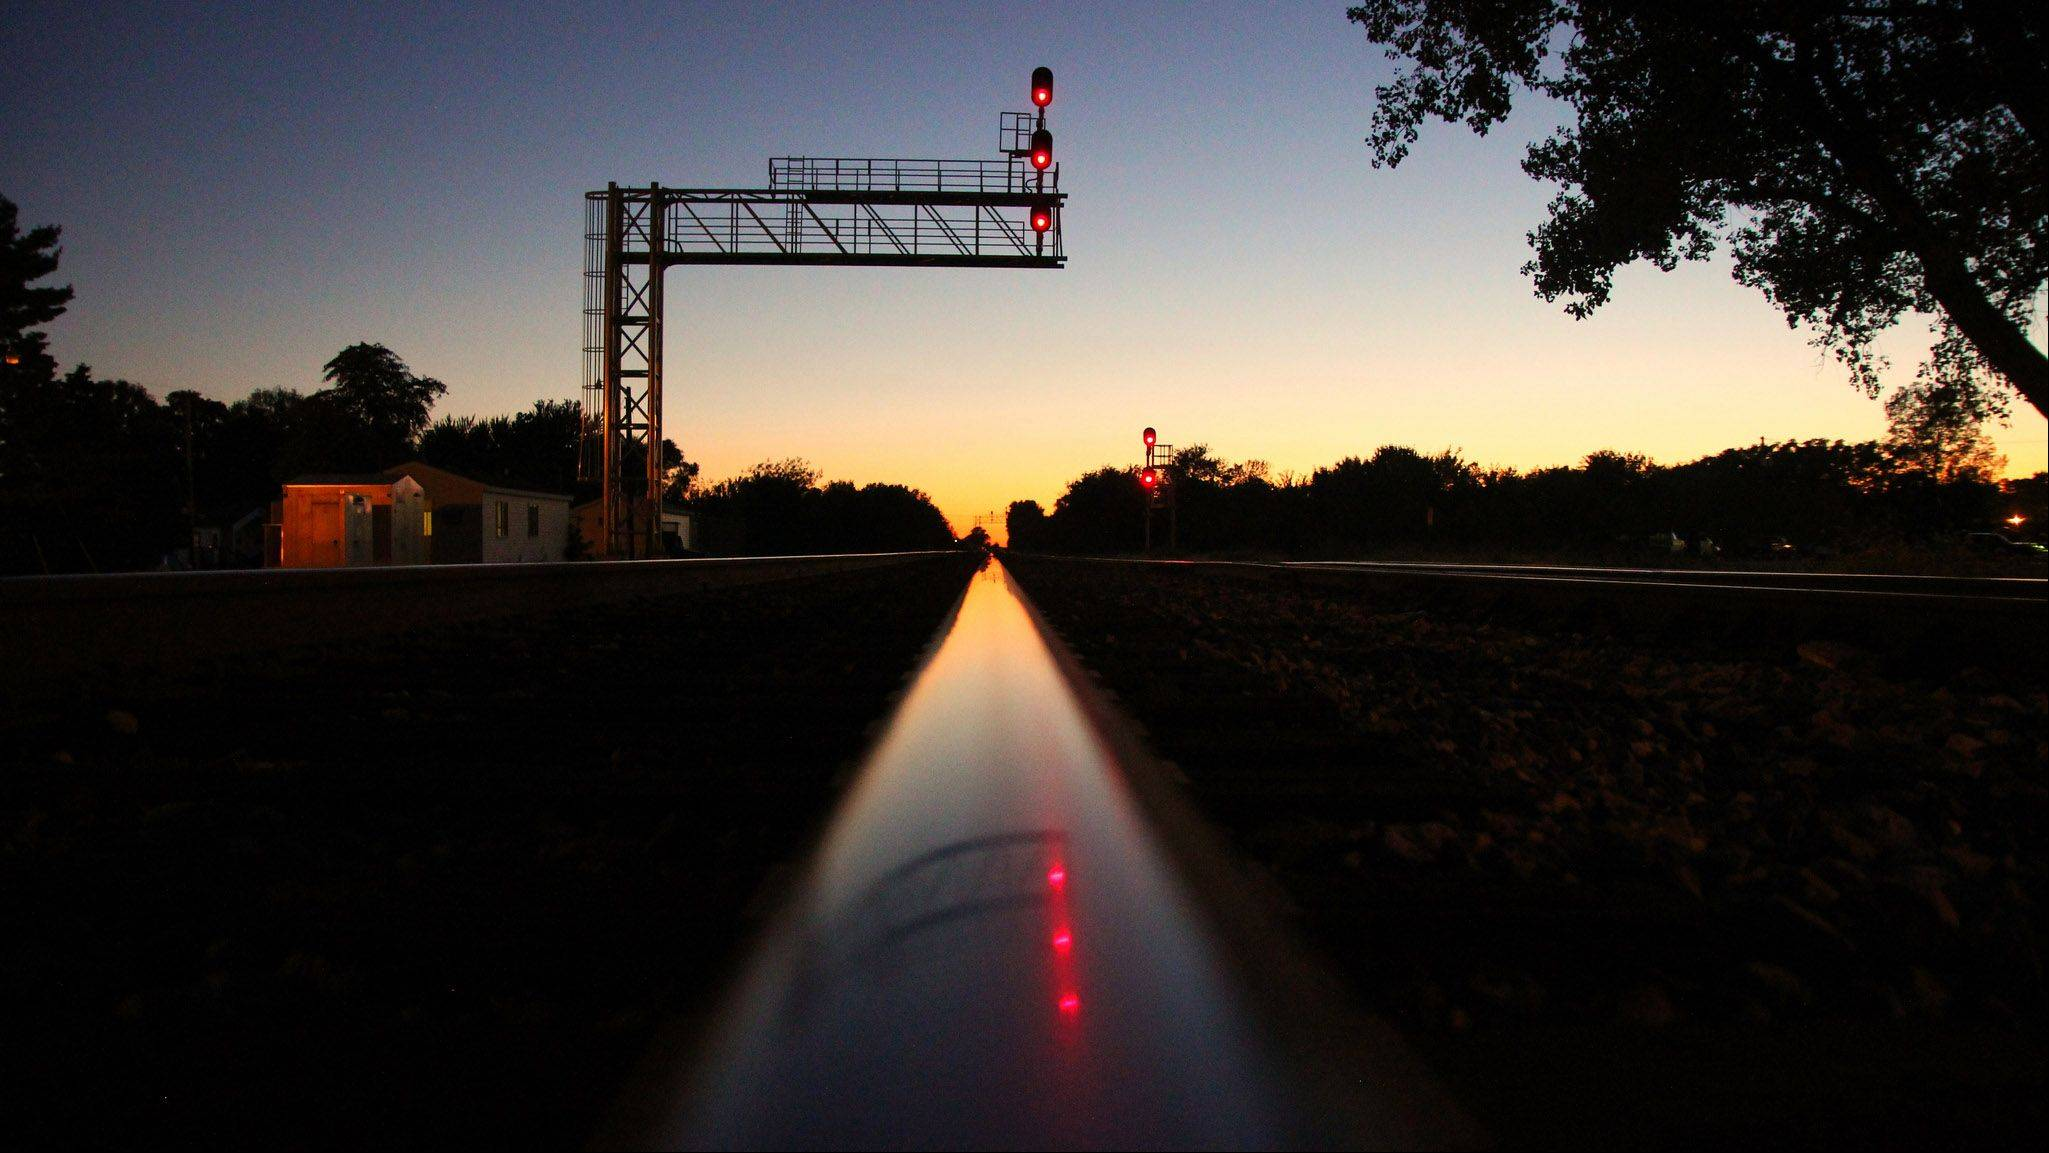 Larry Pearlman of Naperville won our September Photo Finish contest with this image that he calls �Polished Rails � Sunset in Tolono, Illinois.�